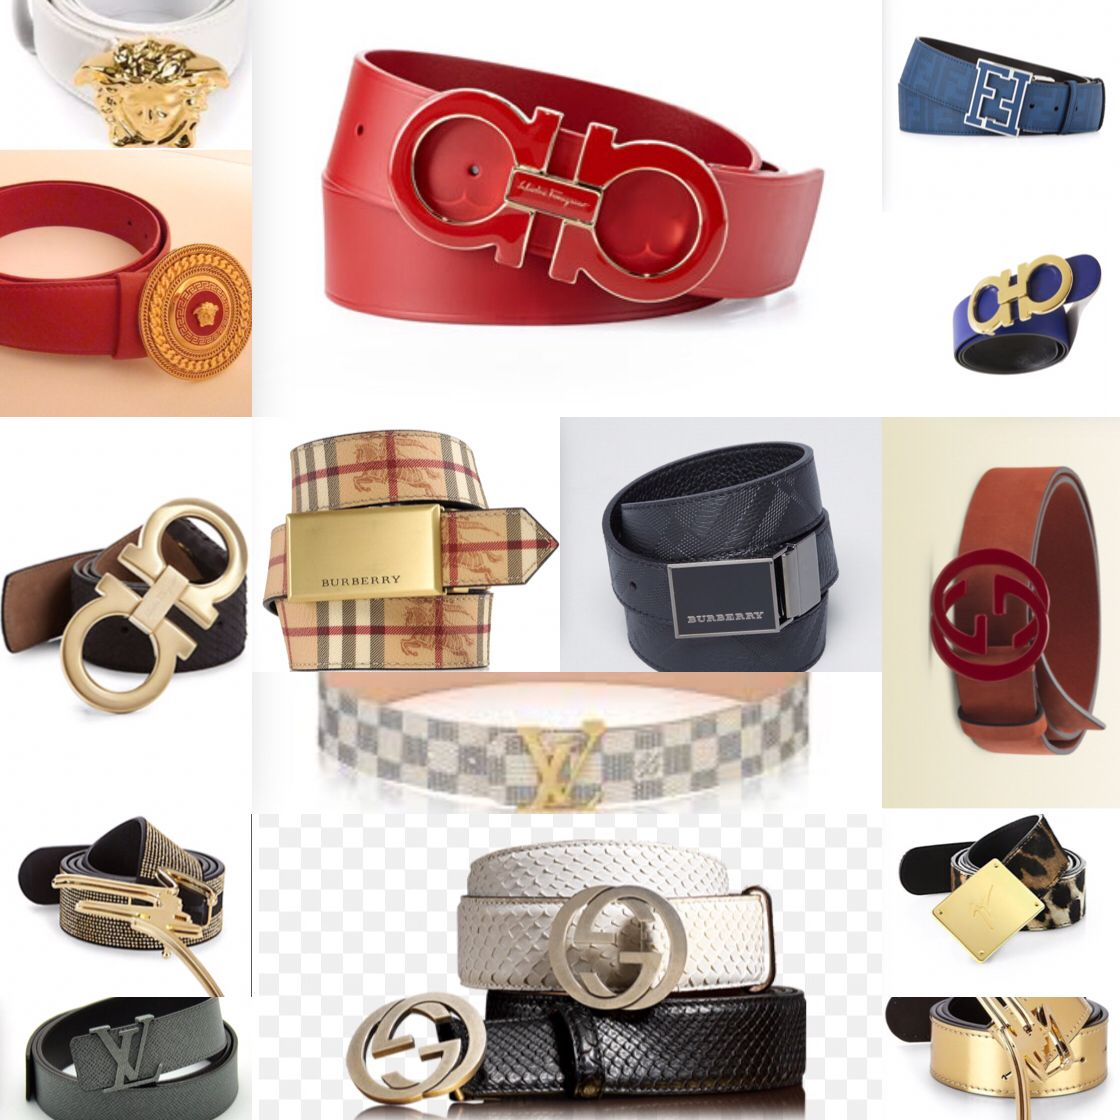 Designer Belts Gucci Louis Vuitton Fendi Burberry Salvatore Ferragamo Versace Giuseppe Zanotti Designer Belts Belts For Women Belt